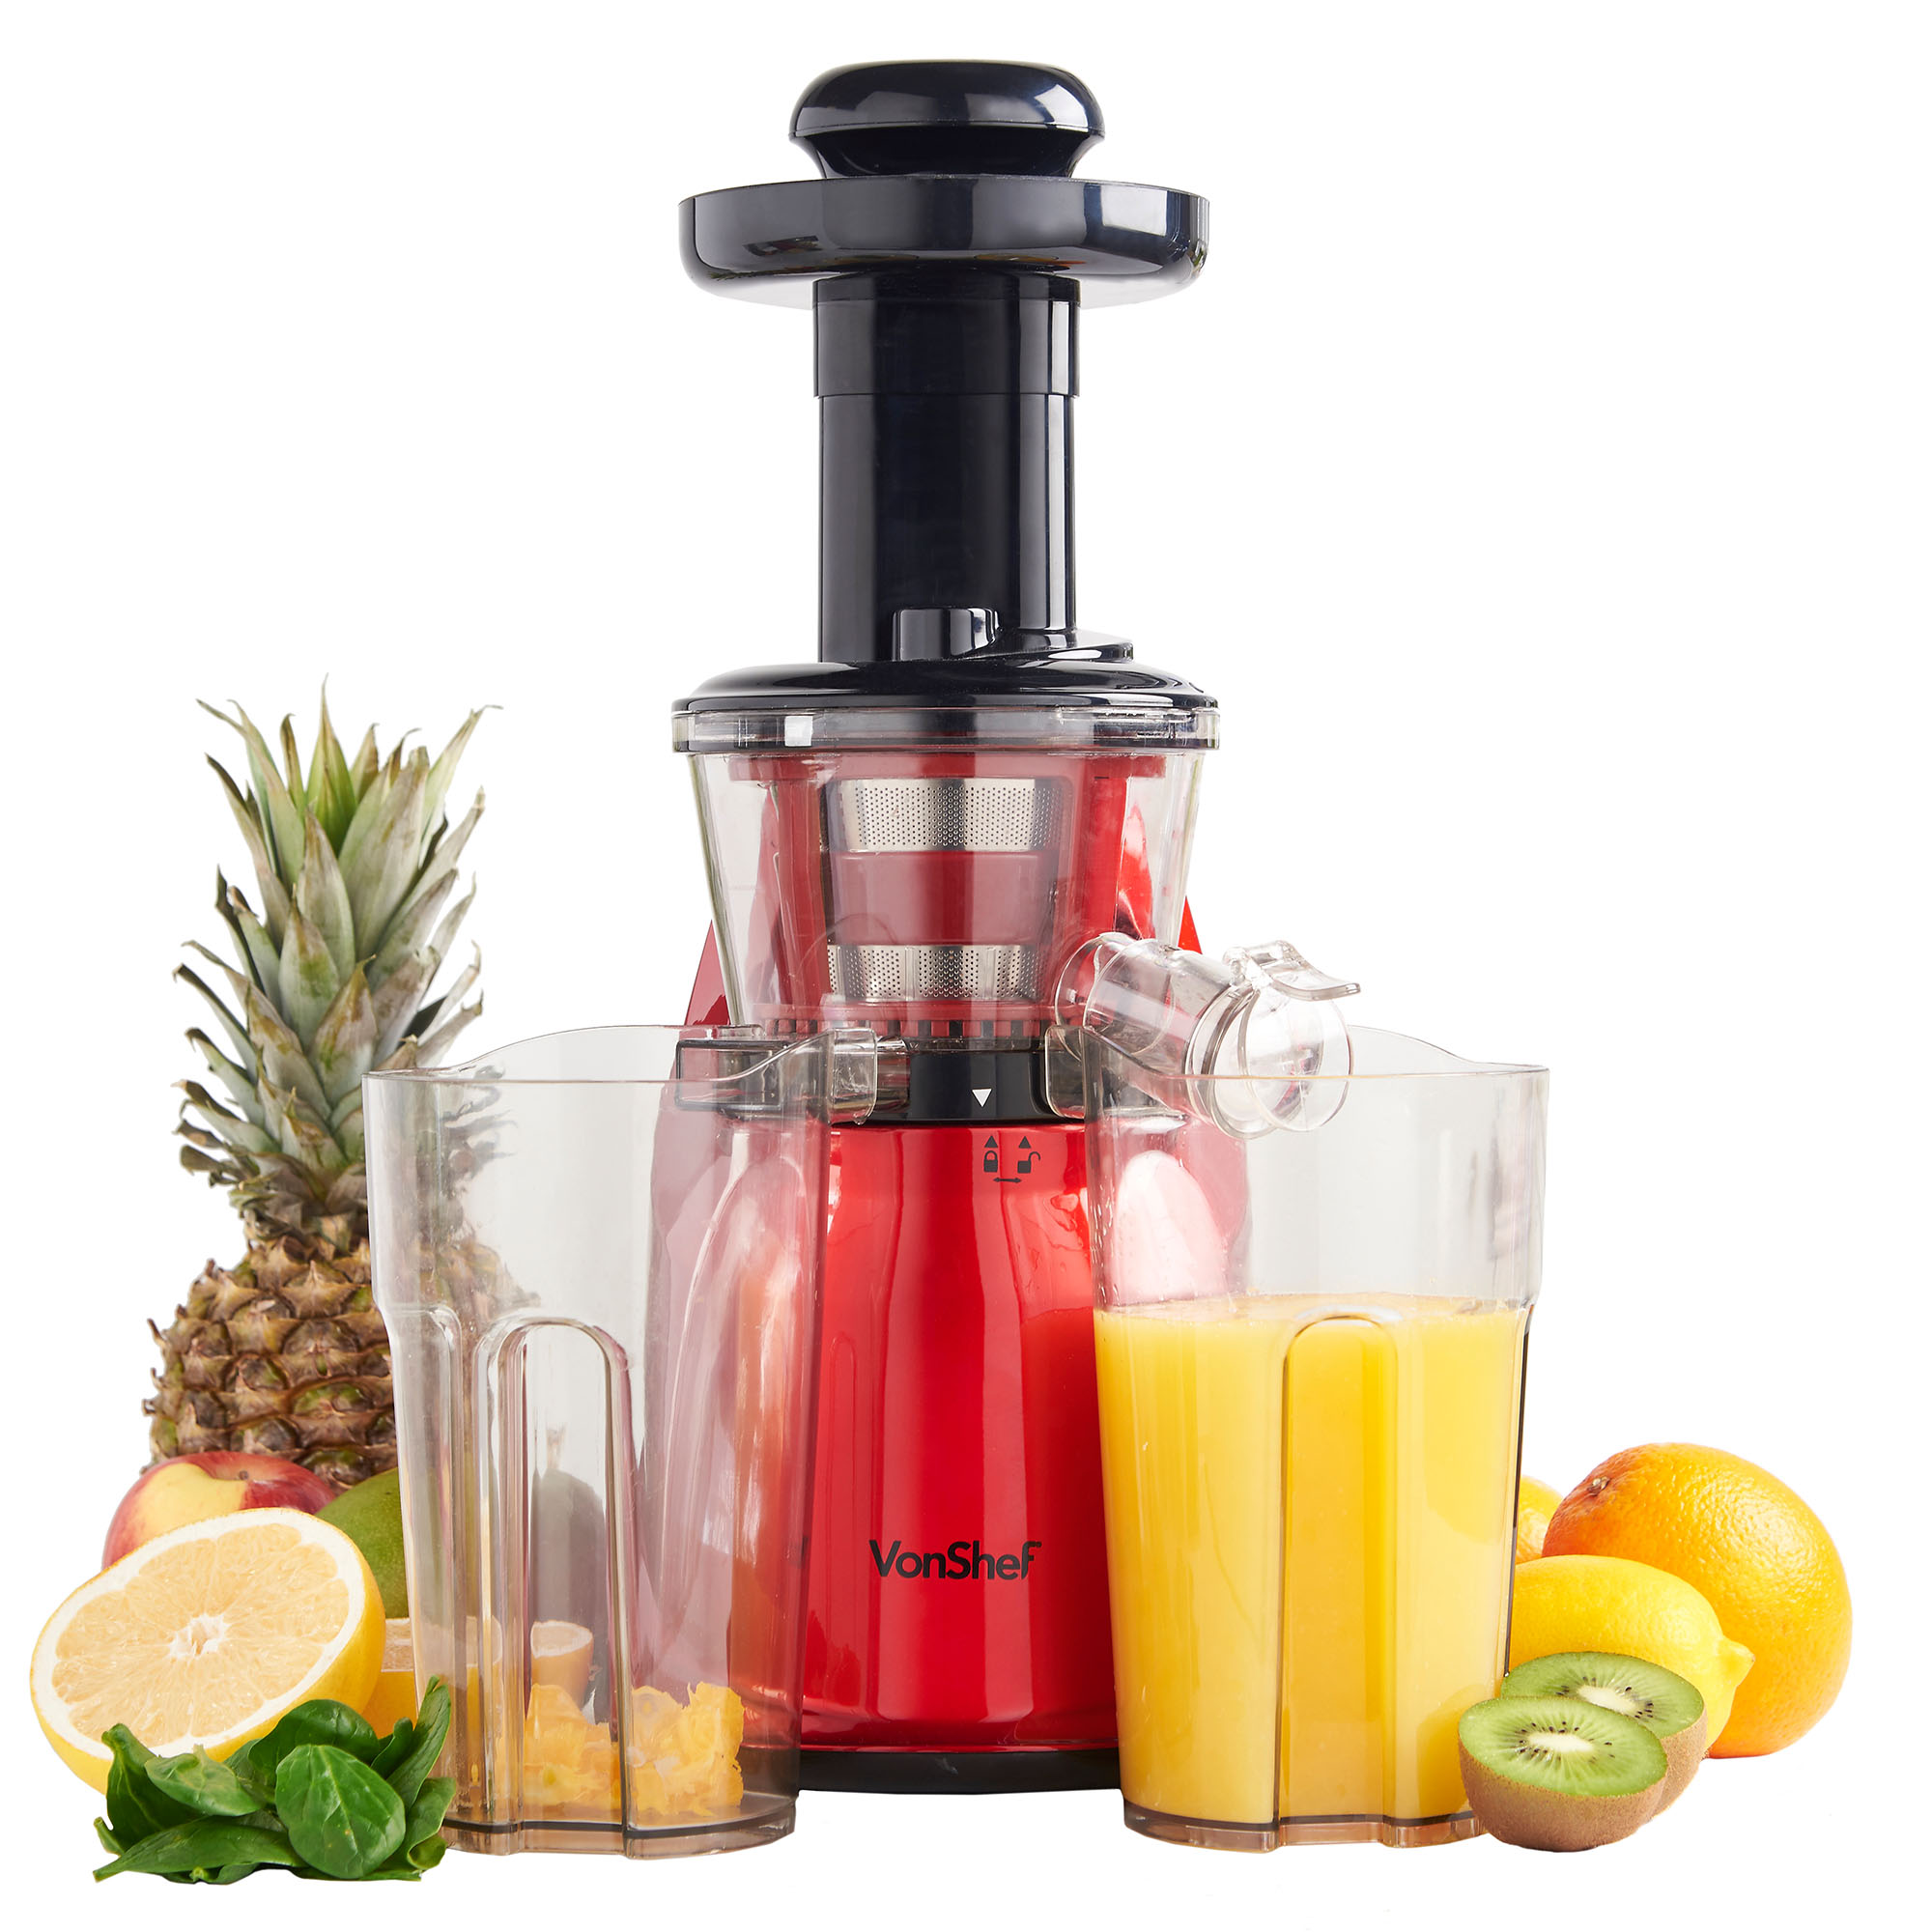 Vonshef Wheatgrass Slow Juicer Review : vonShef Premium Slow Masticating Juicer Electric vegetable Juice Extractor - Red eBay